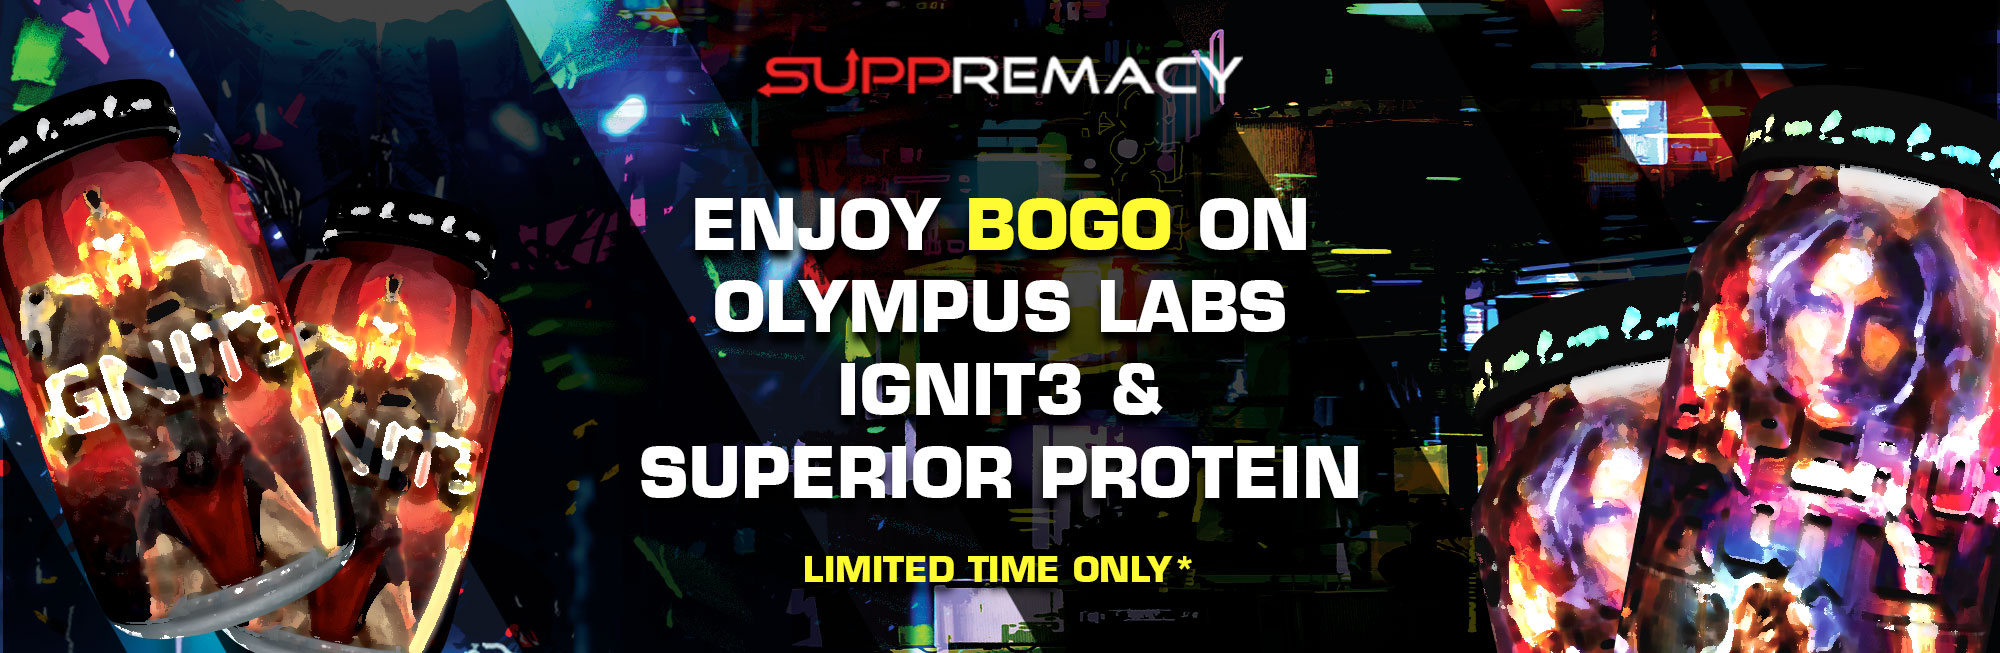 Olympus Labs IGNIT3 and Superior Protein BOGO at Suppremacy!